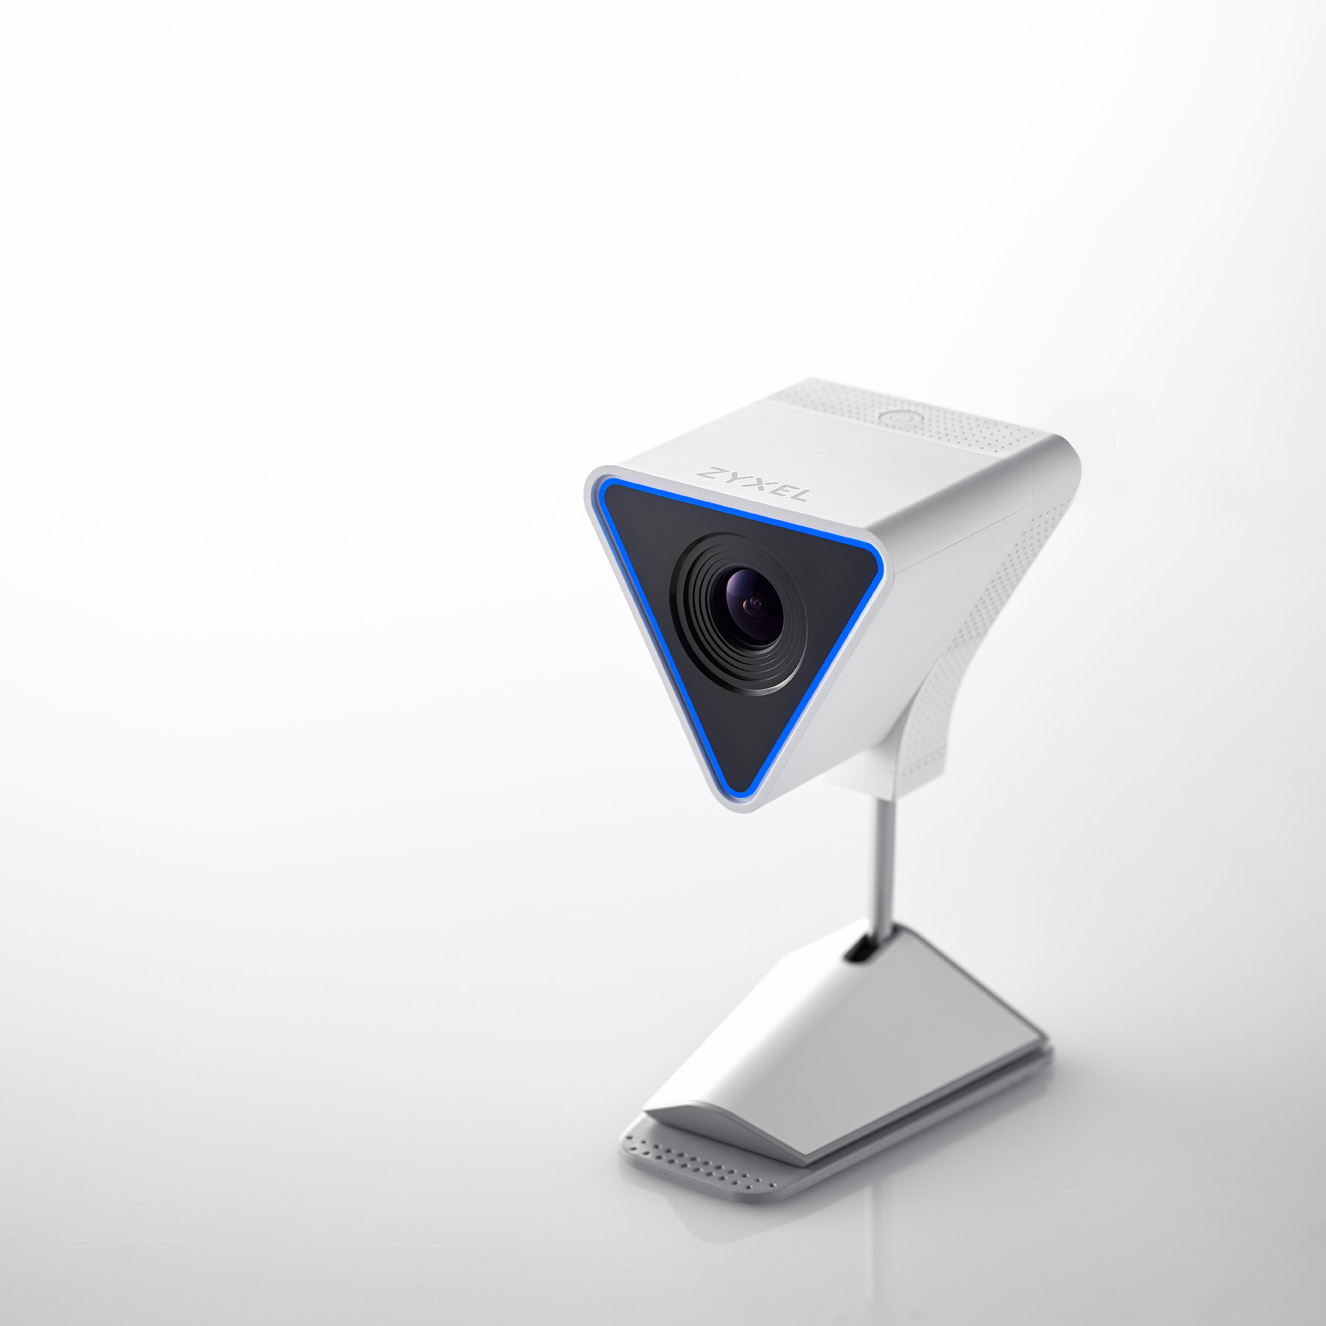 Aurora cloud access camera / Zyxel Communications Corporation